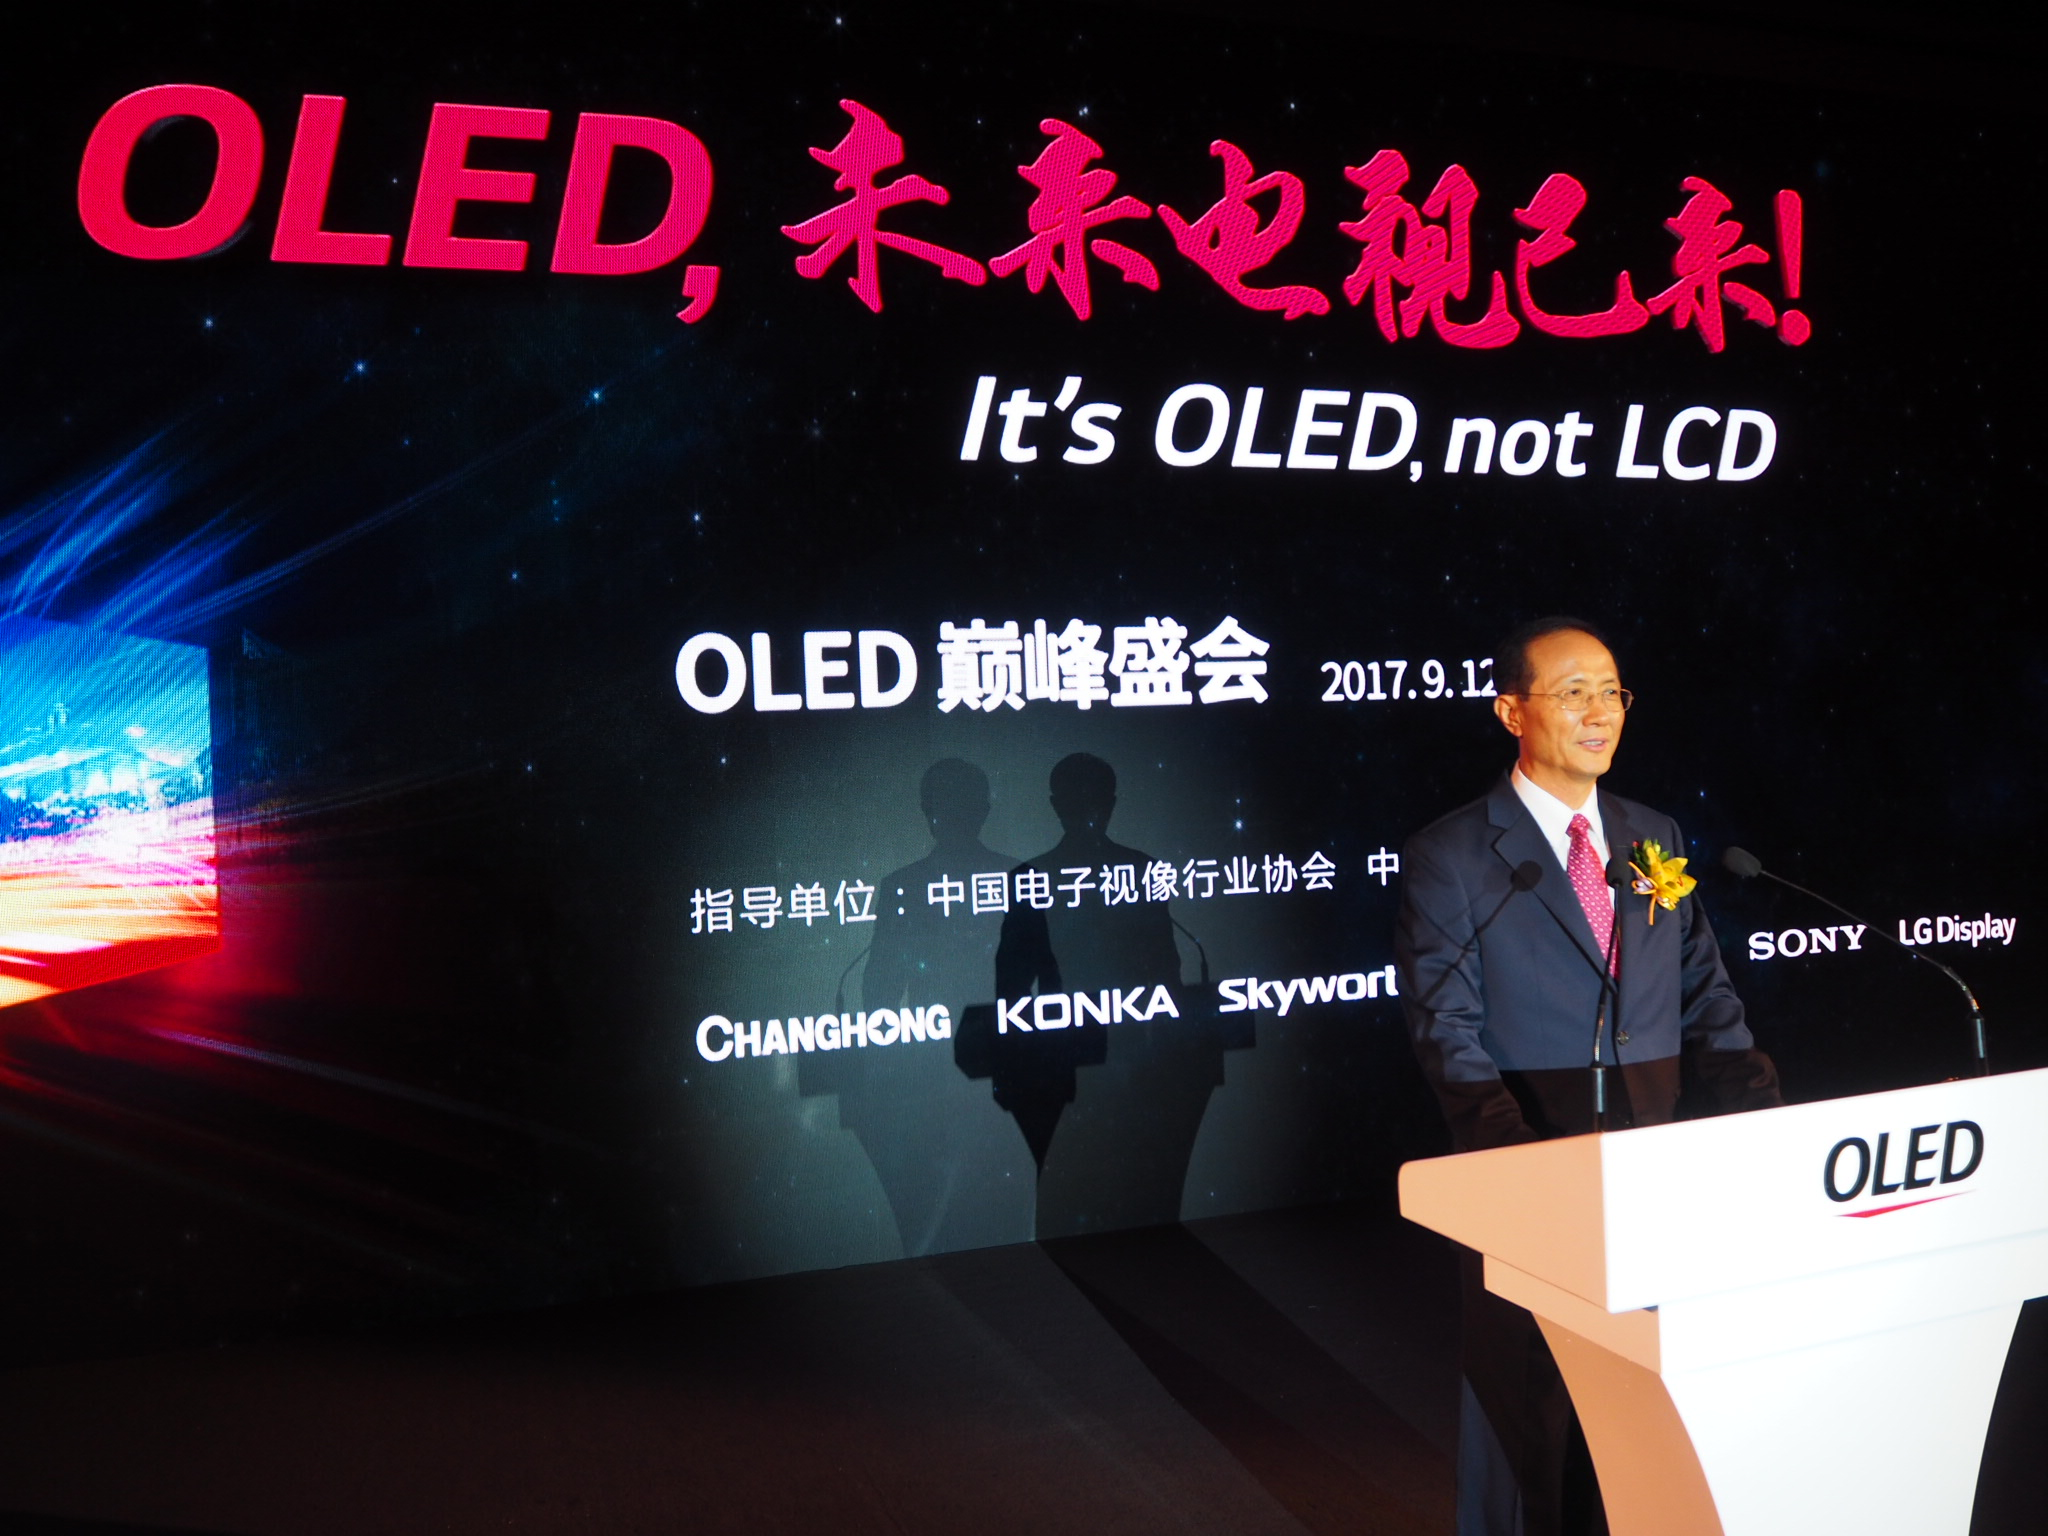 LG Display held 'OLED Partners Day' at the Beijing Renaissance Capital Hotel in Beijing on September 12. Chief marketing officer Yeo Sang-duk is delivering his welcoming speech. (photo courtesty: LG Display)